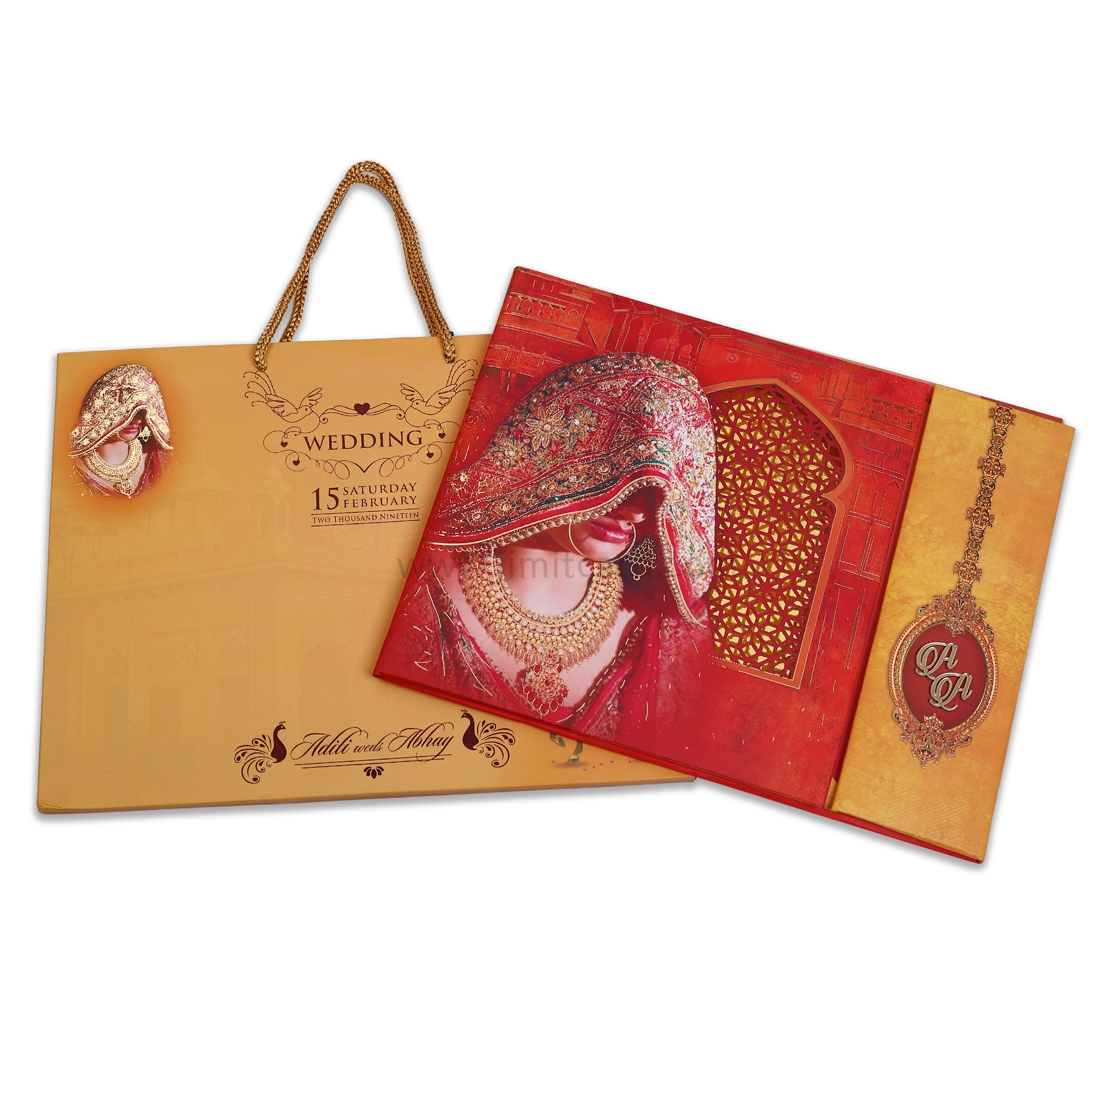 Royal & Exclusive Bride and Groom Carry Bag Style Wedding Card -0